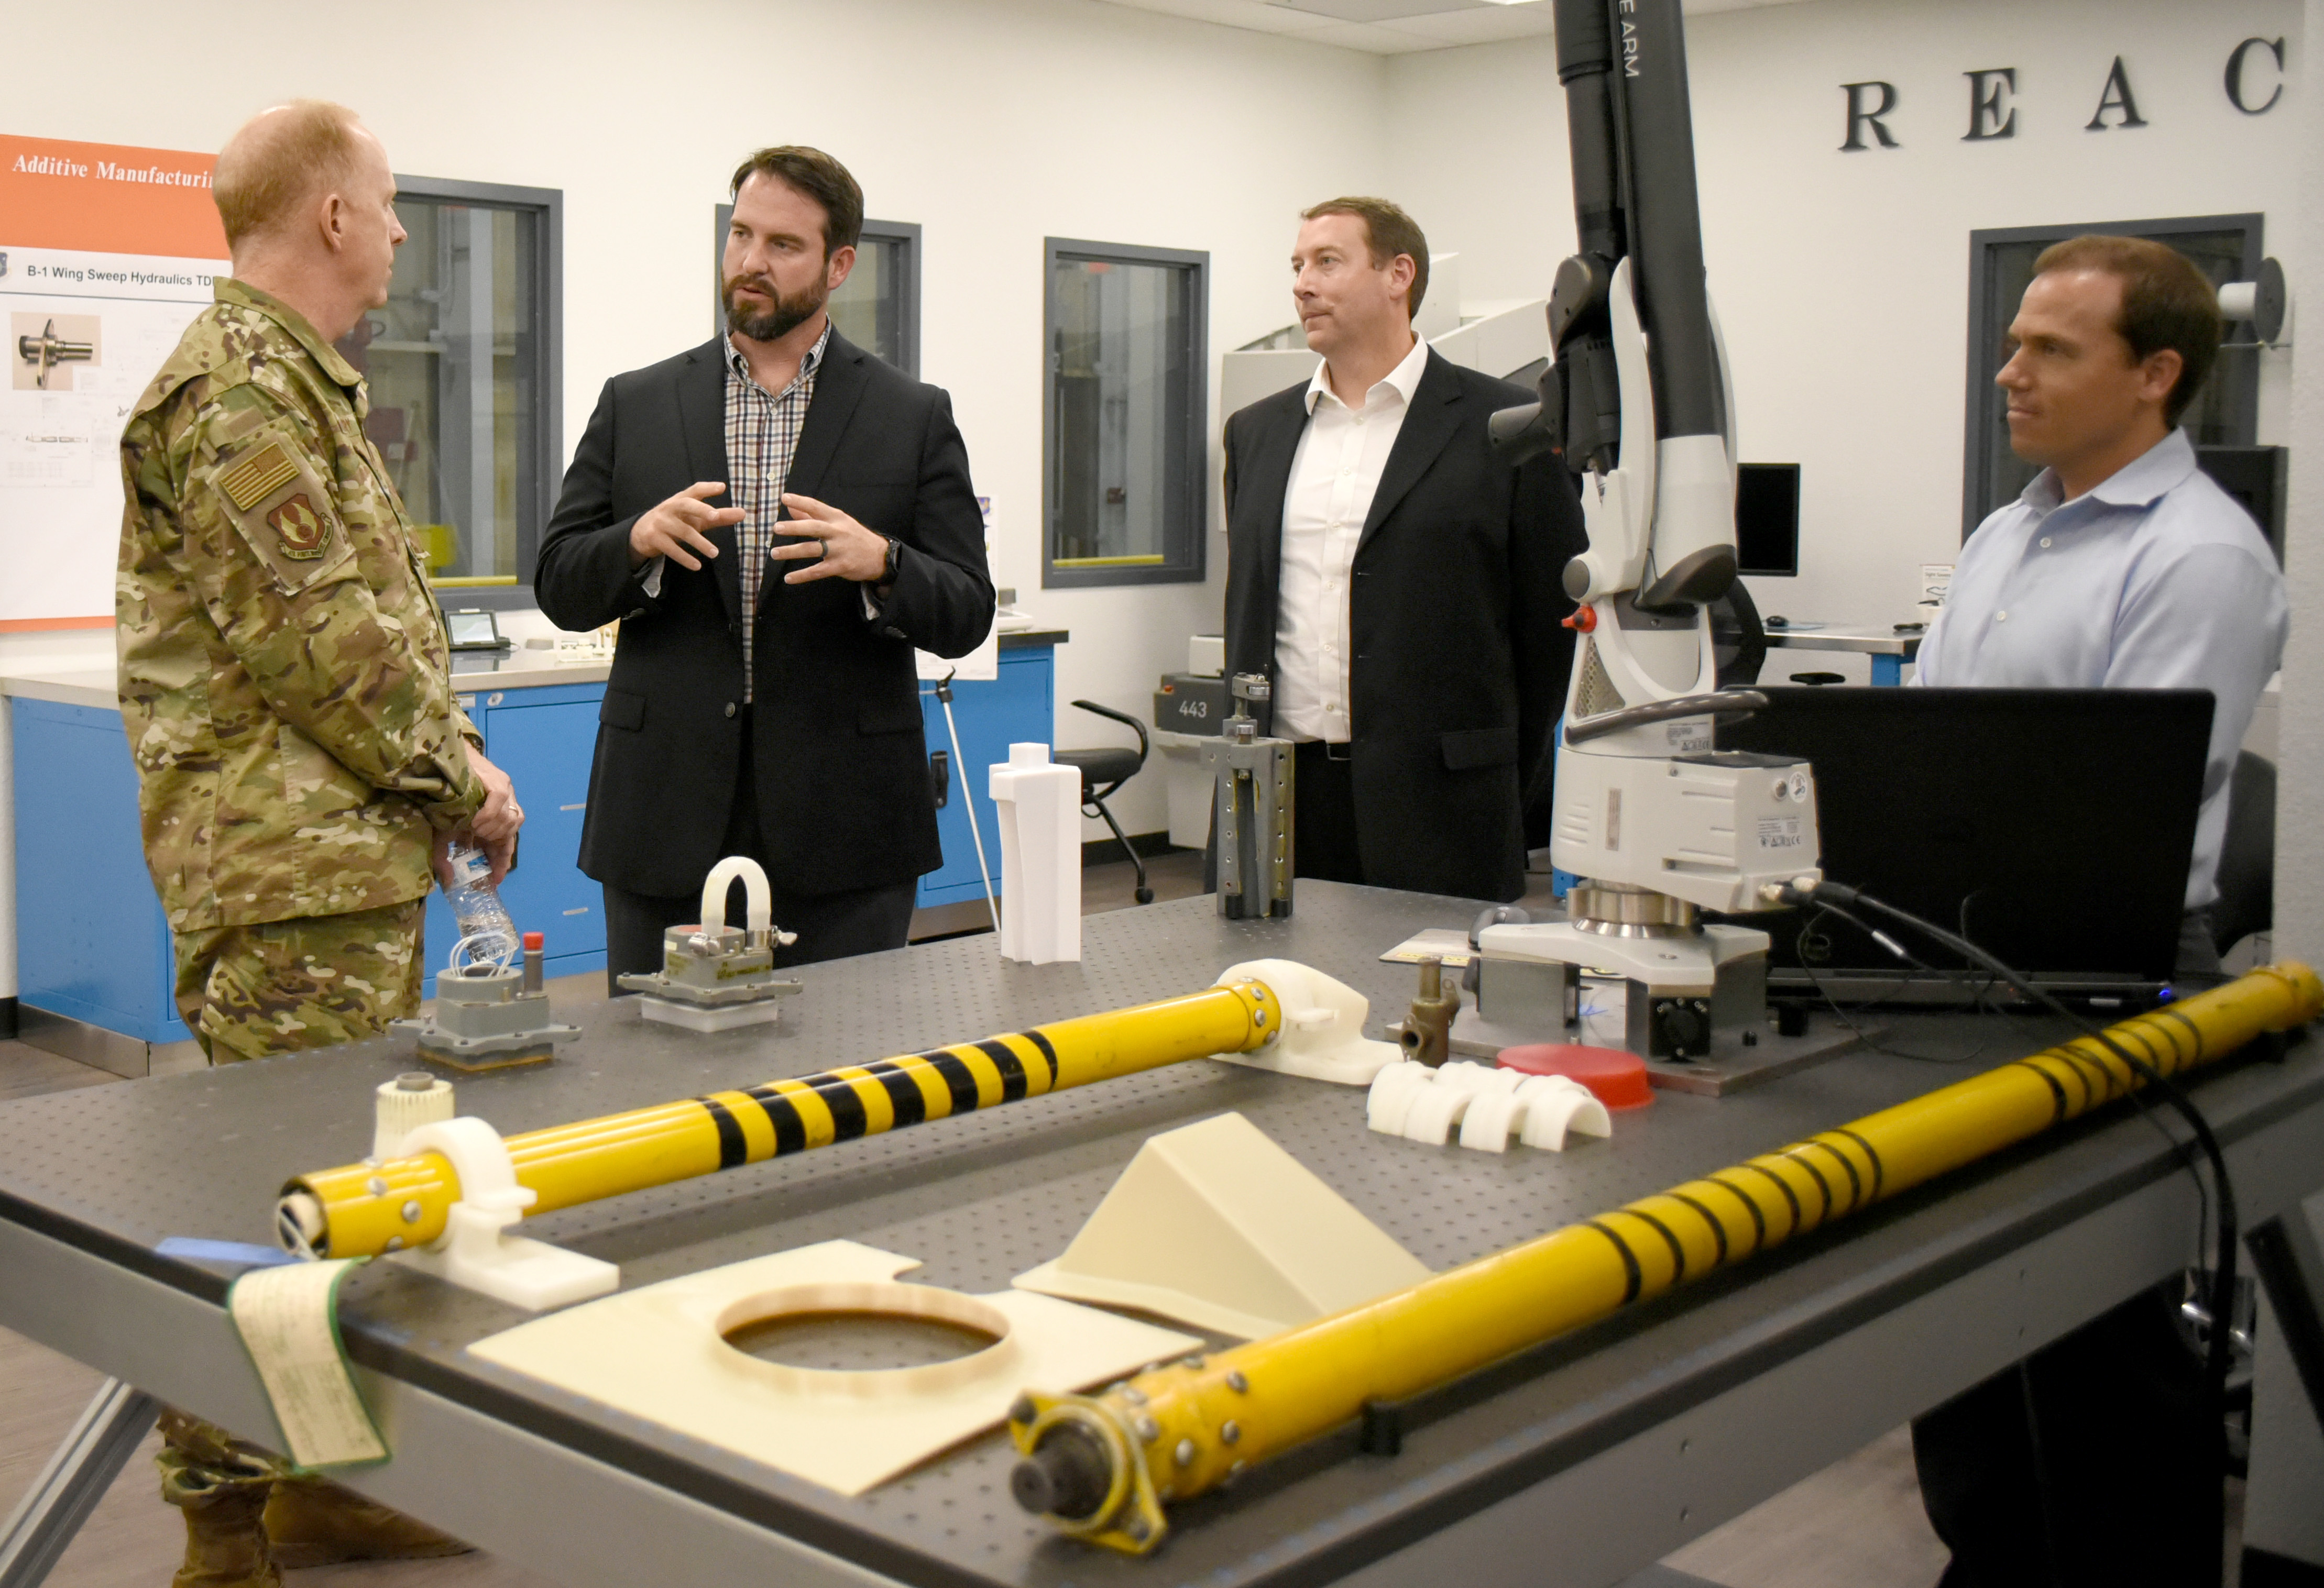 AFMC interim commander visits Tinker, REACT Lab